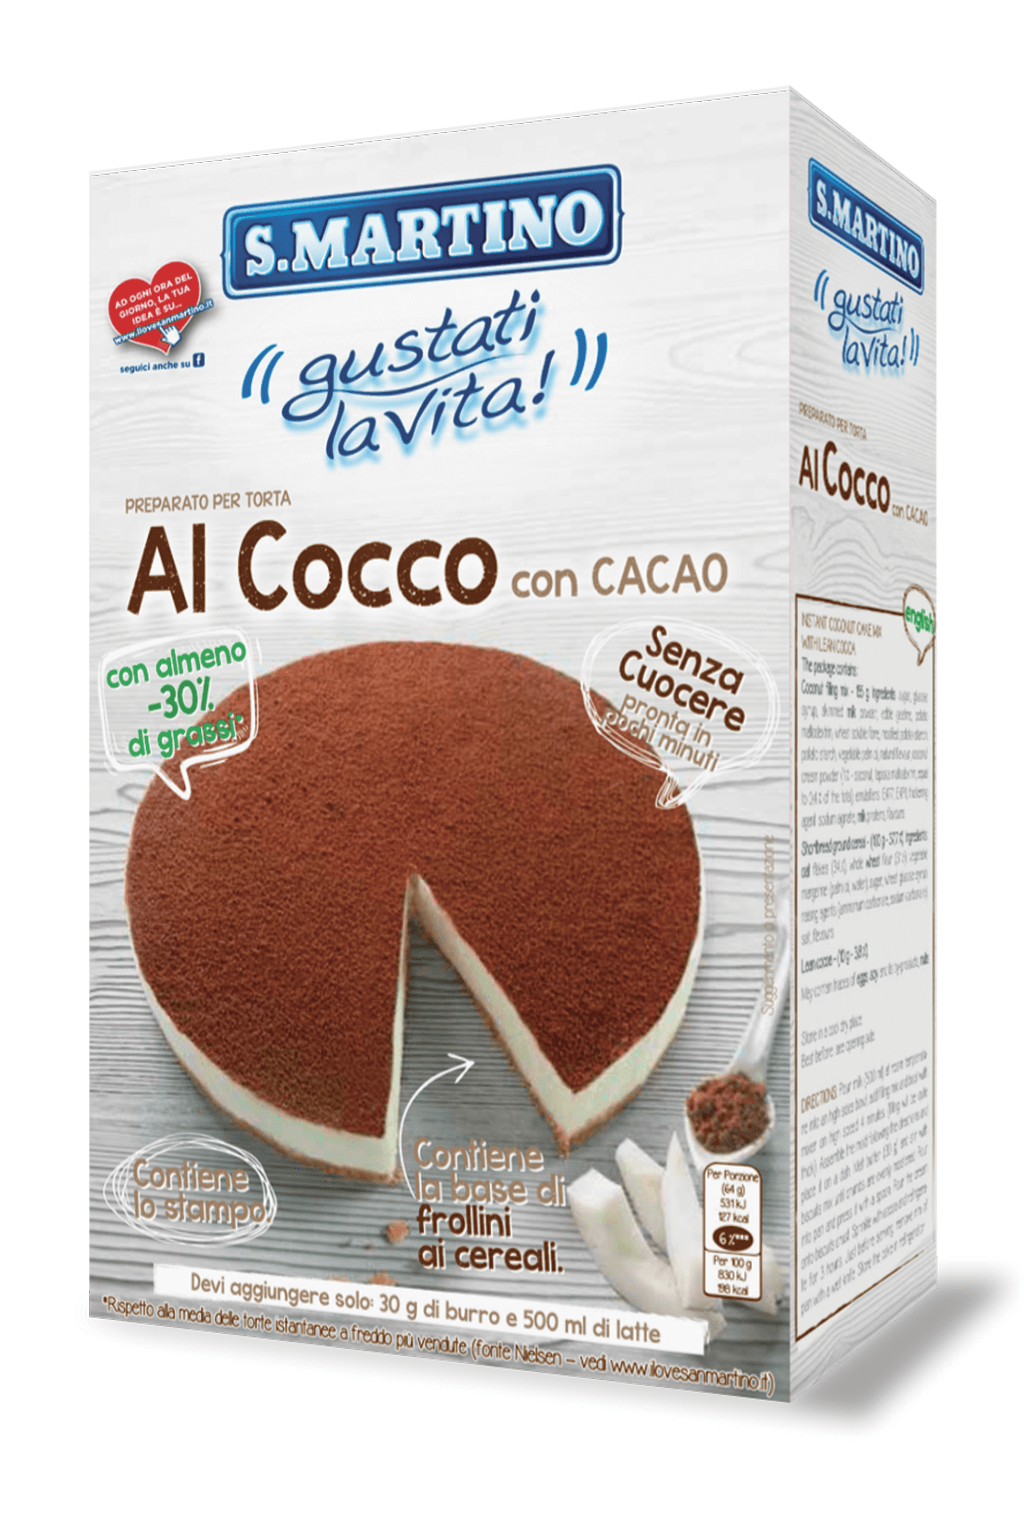 Coconut with Cocoa cake mix (-30% of fats) 265g